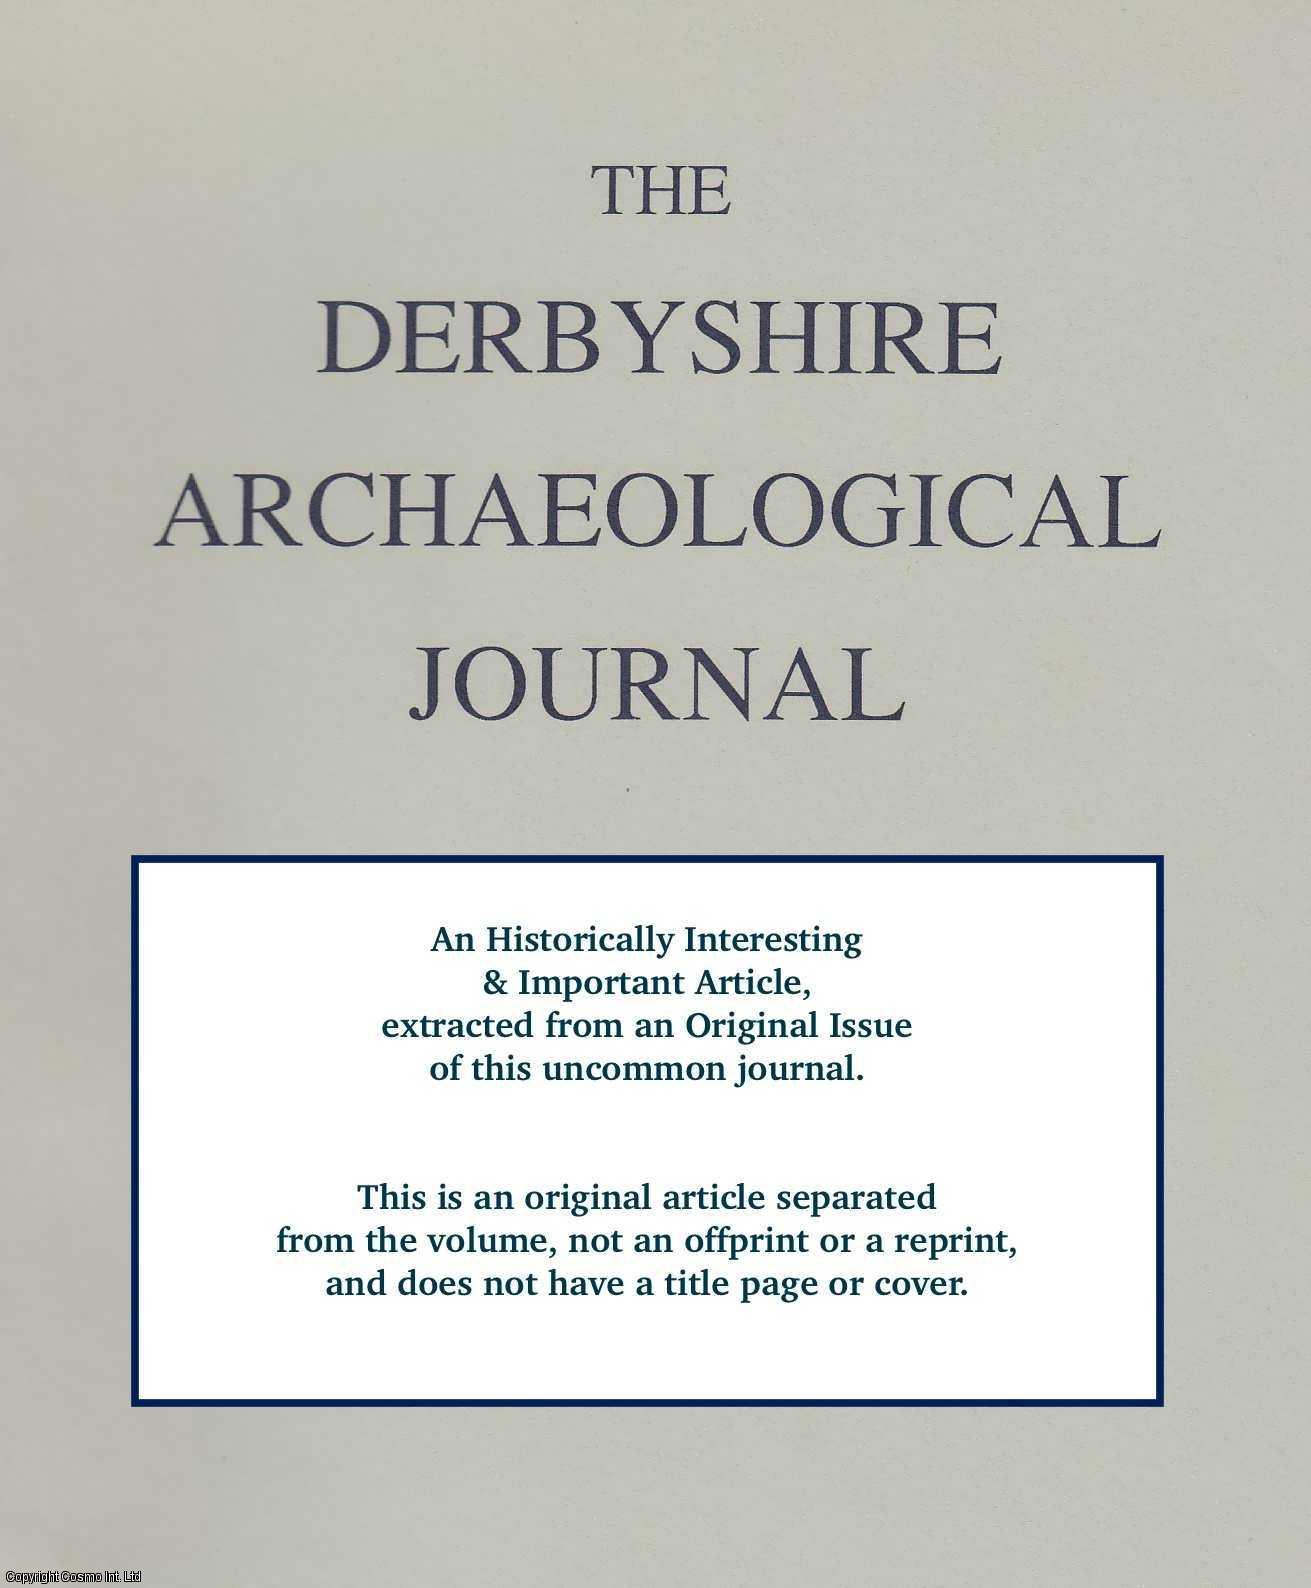 KEITH BRANIGAN & OTHERS - Two Roman Lead Pigs from Carsington. An original article from the Derbyshire Archaeological Journal 1986.